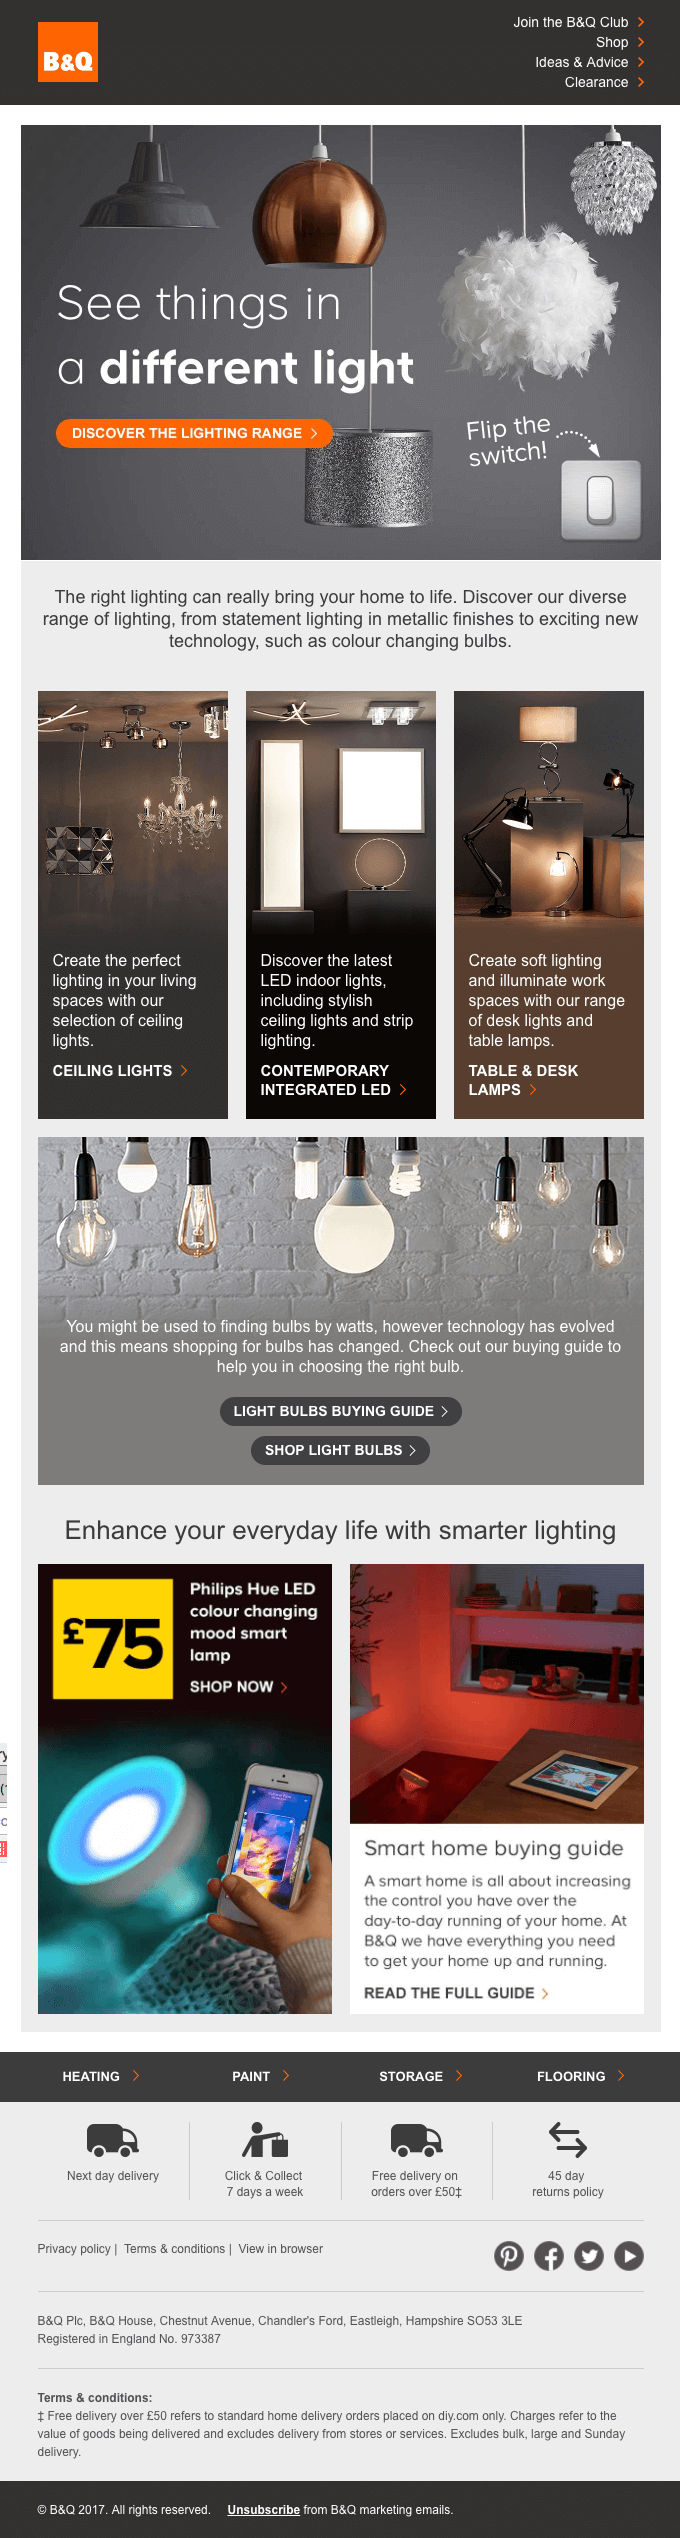 Say Hello To Autumn You Re Going To Appreciate Our Lighting Really Good Emails Email Design Best Email Email Design Inspiration